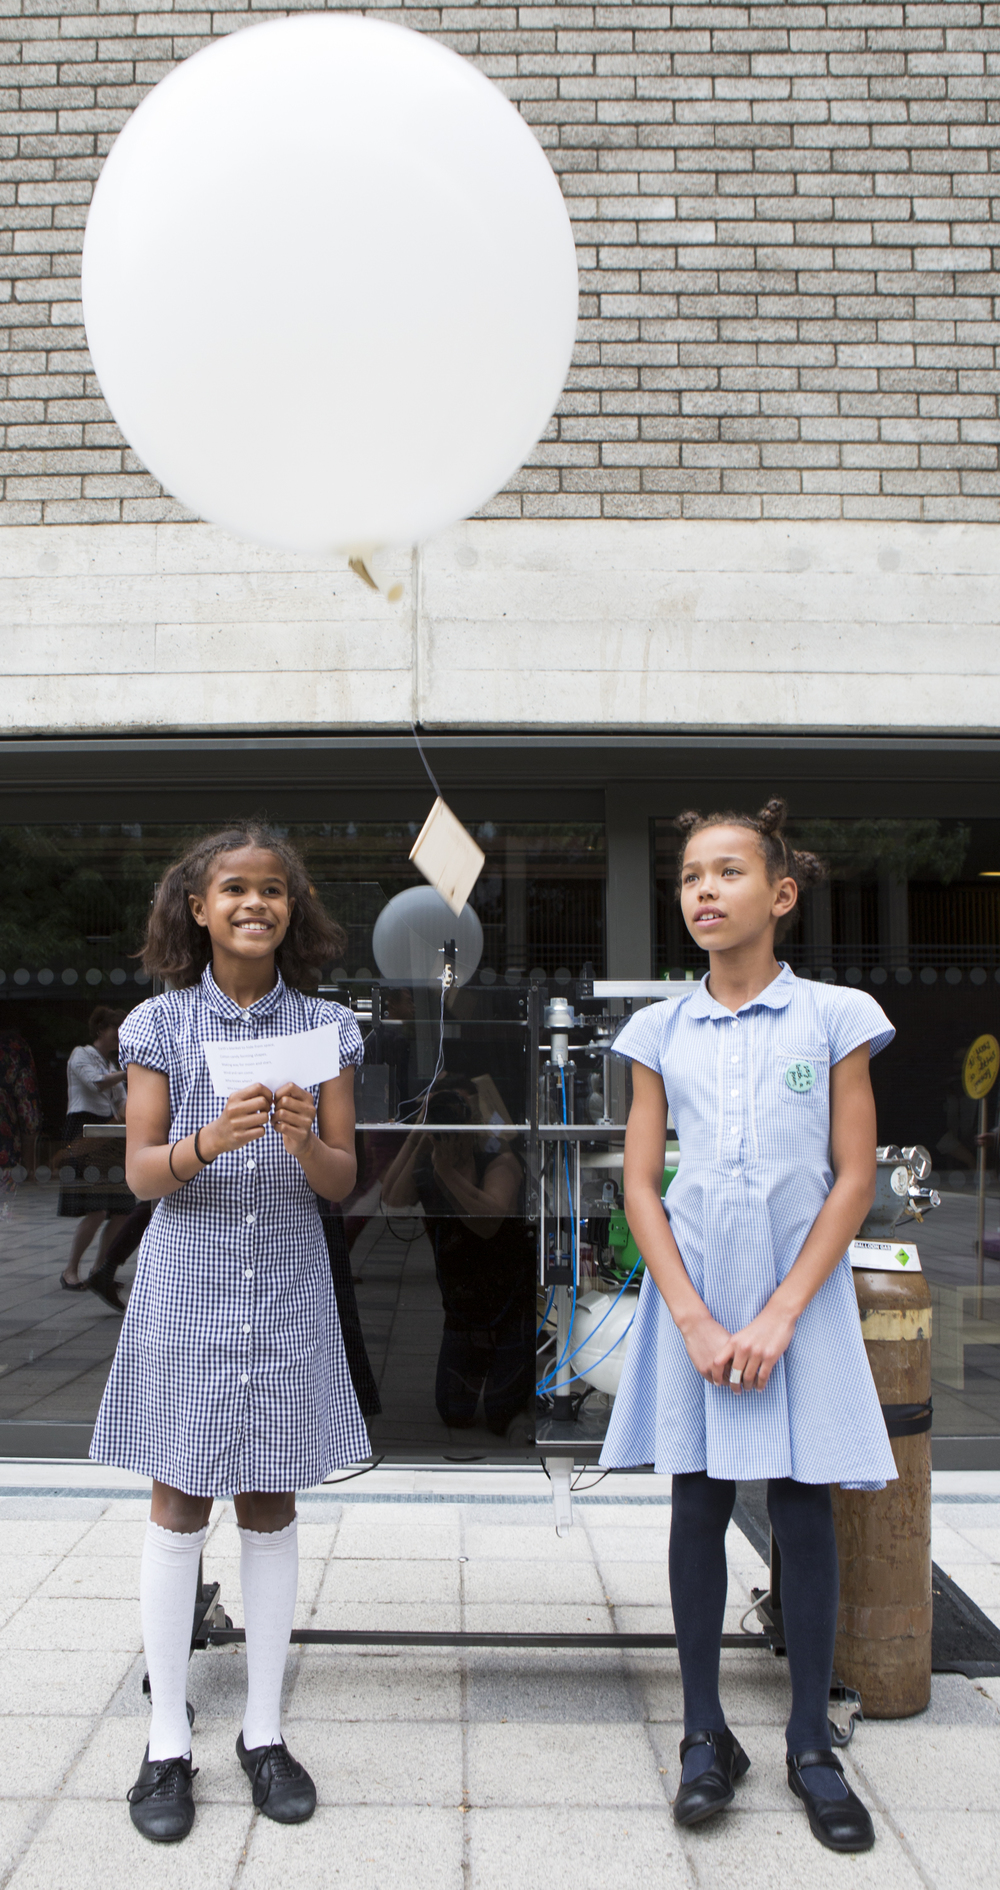 Two girls from All Saints Primary School 3 - National Poetry Day - Credit Ellie Kurttz